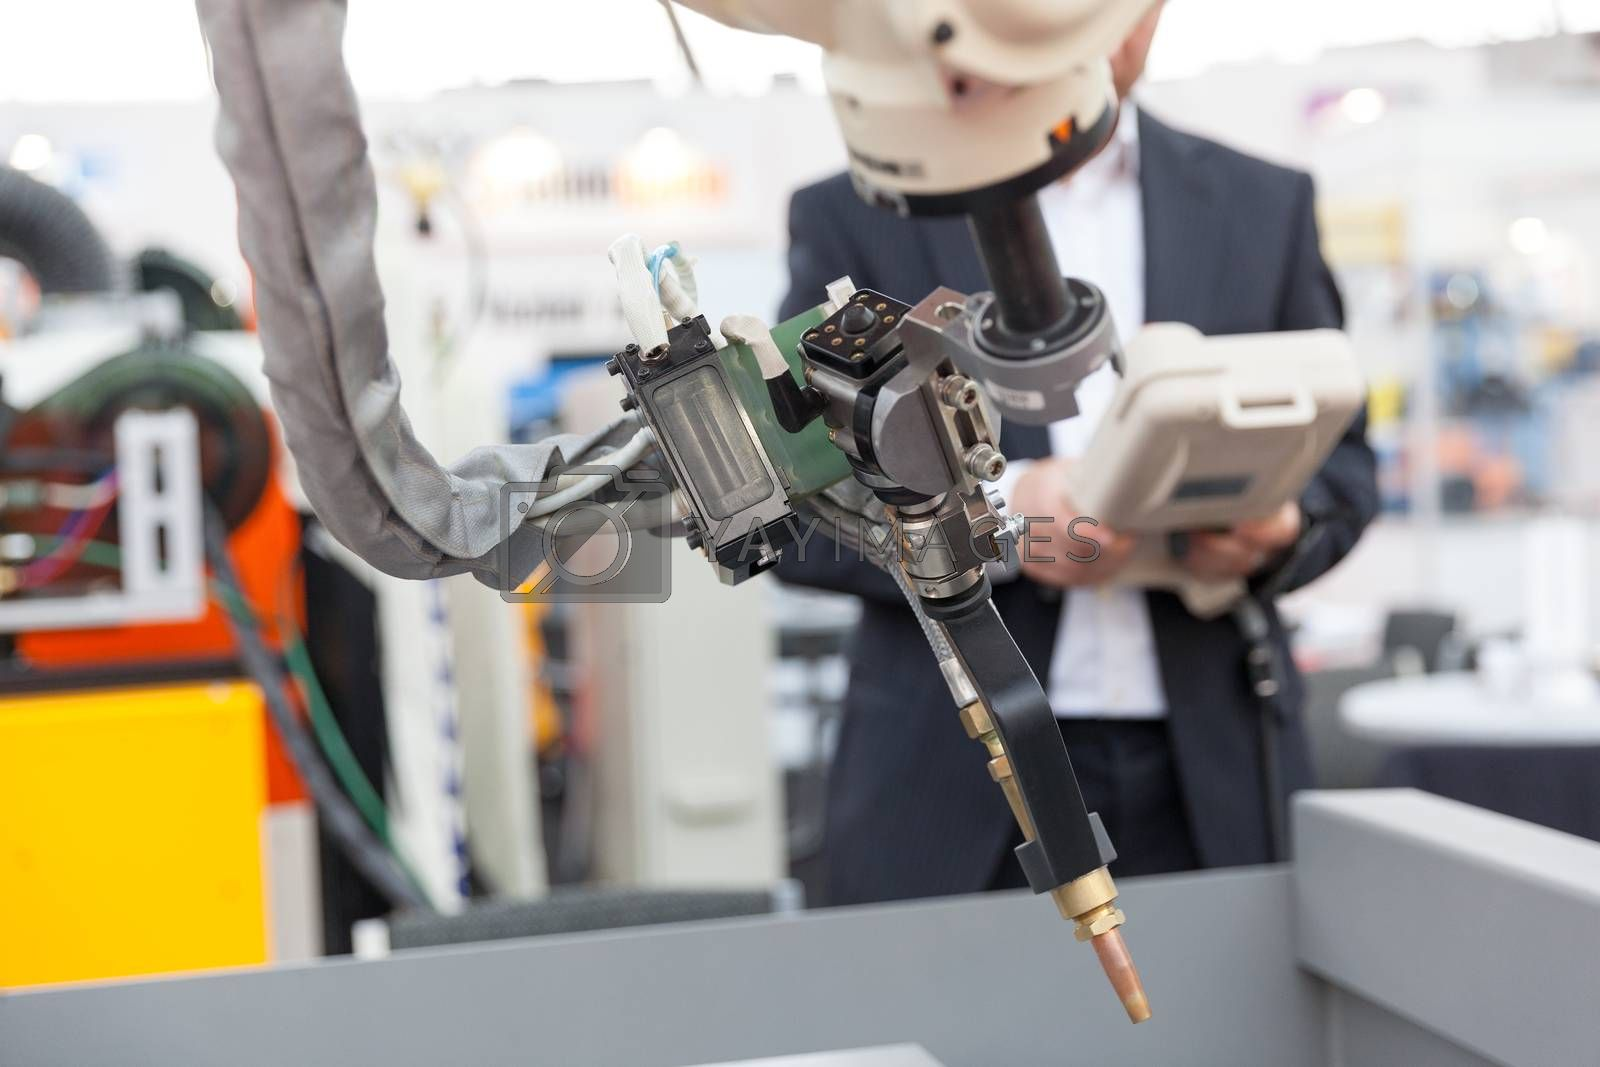 Industrial welding robot arm in the focus, blurred operator in the background